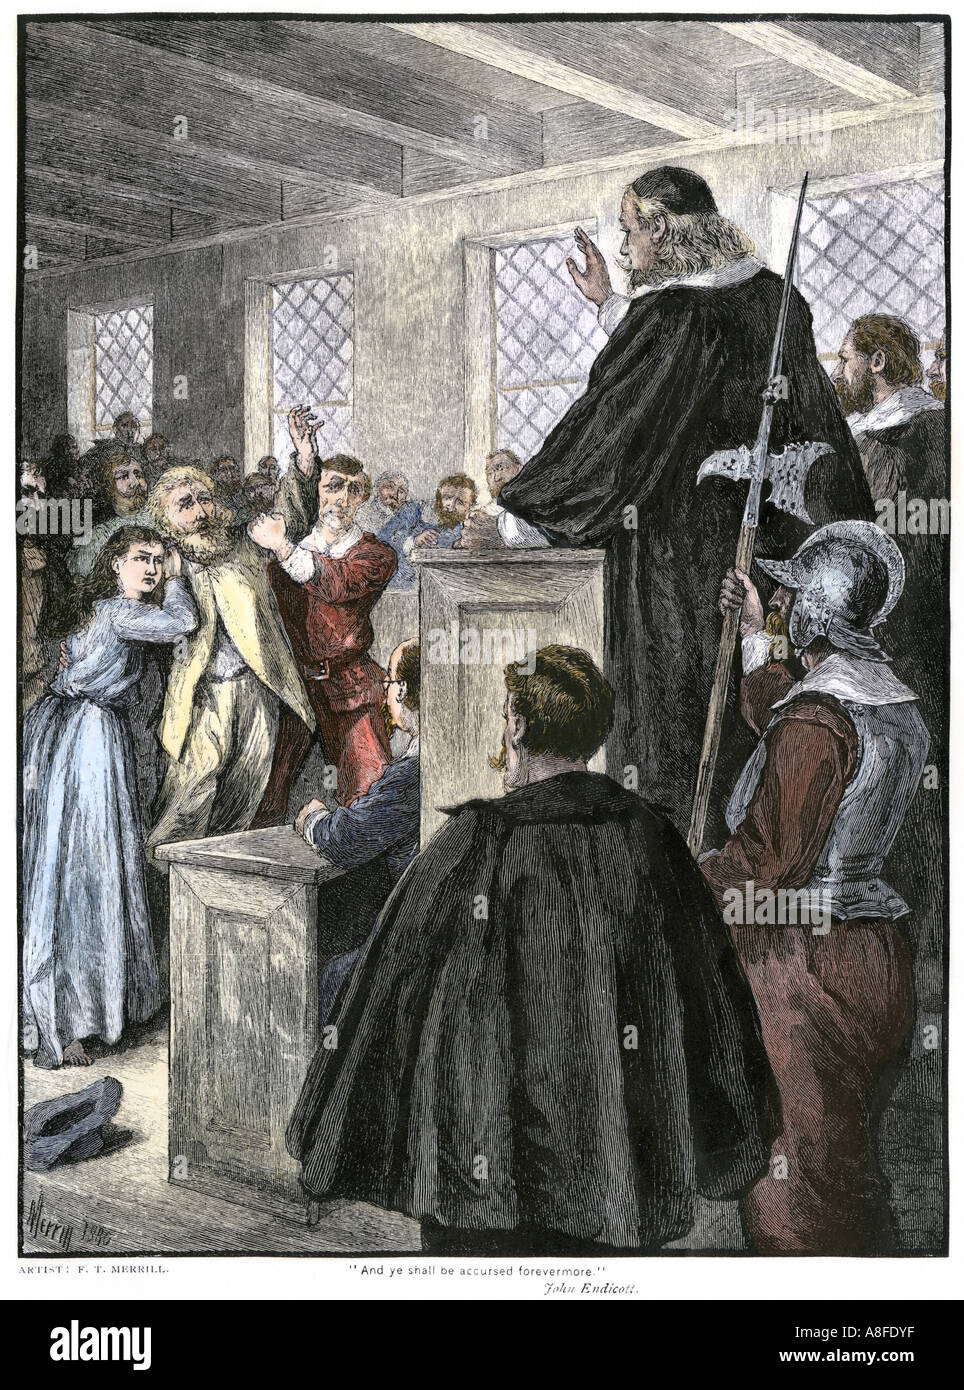 guilty verdict pronounced at the salem witch trials in massachusetts